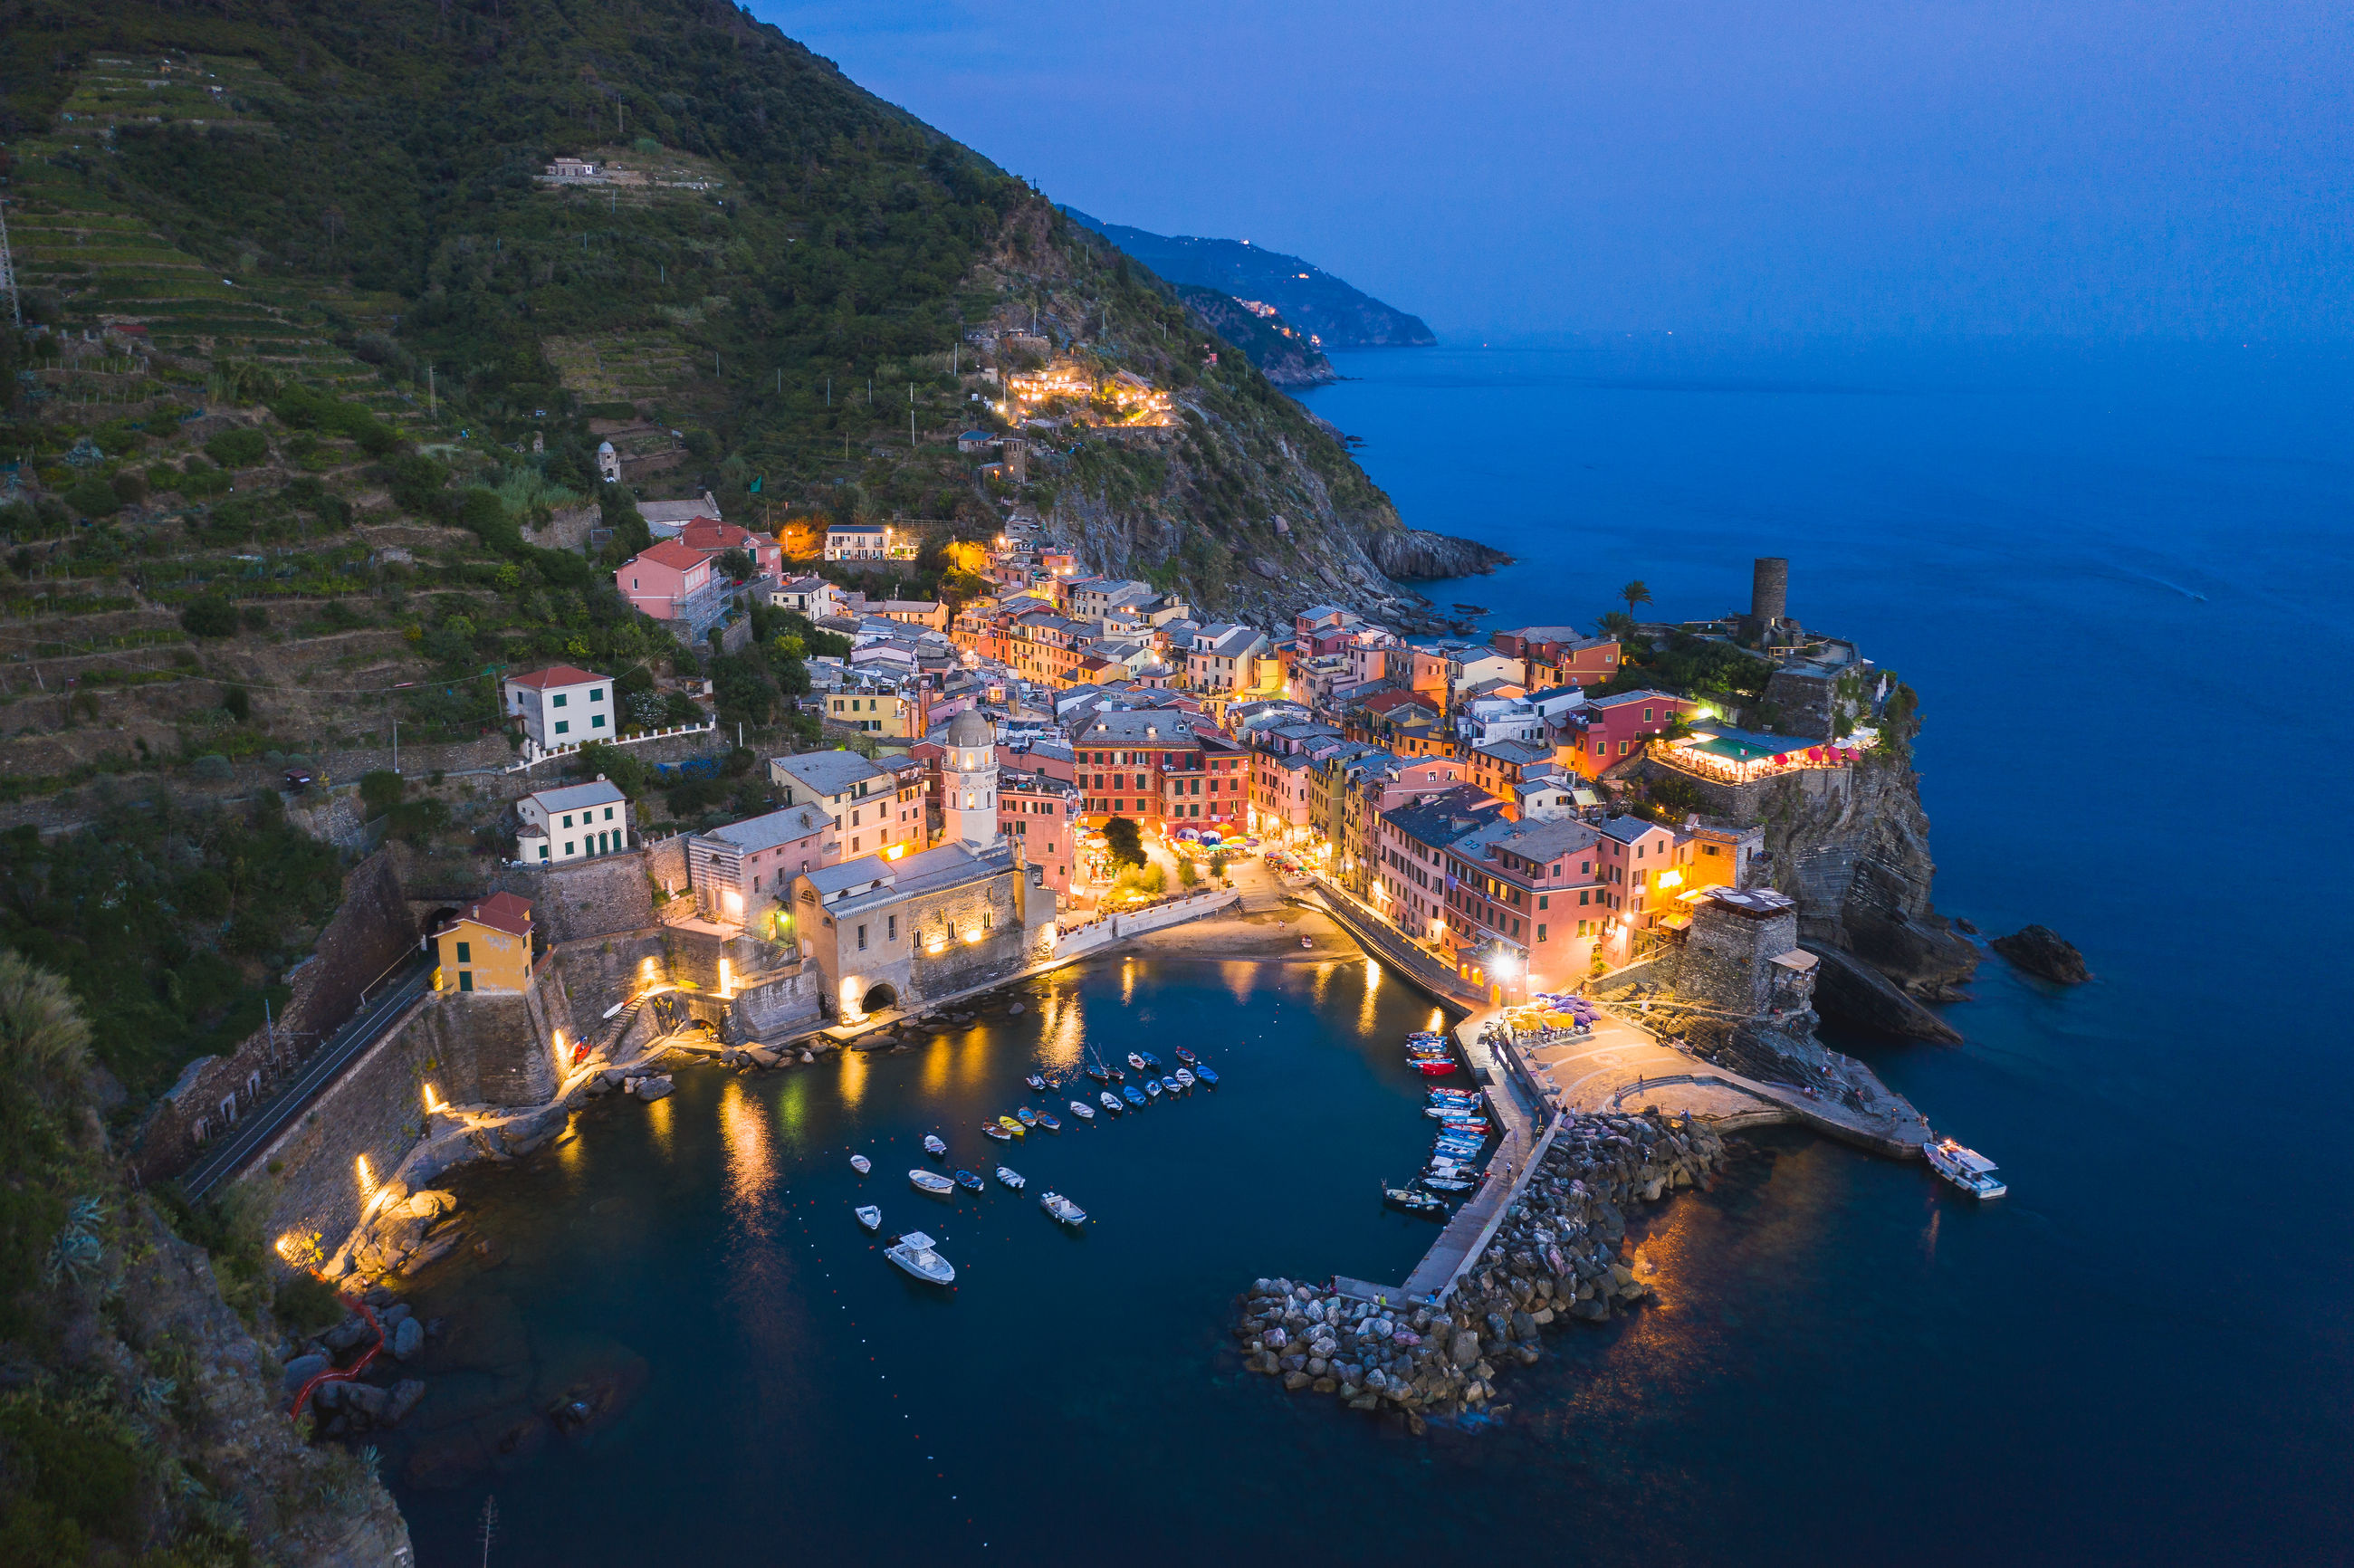 water, architecture, sea, building exterior, built structure, illuminated, high angle view, nature, mountain, building, no people, land, outdoors, sky, travel destinations, scenics - nature, dusk, night, the past